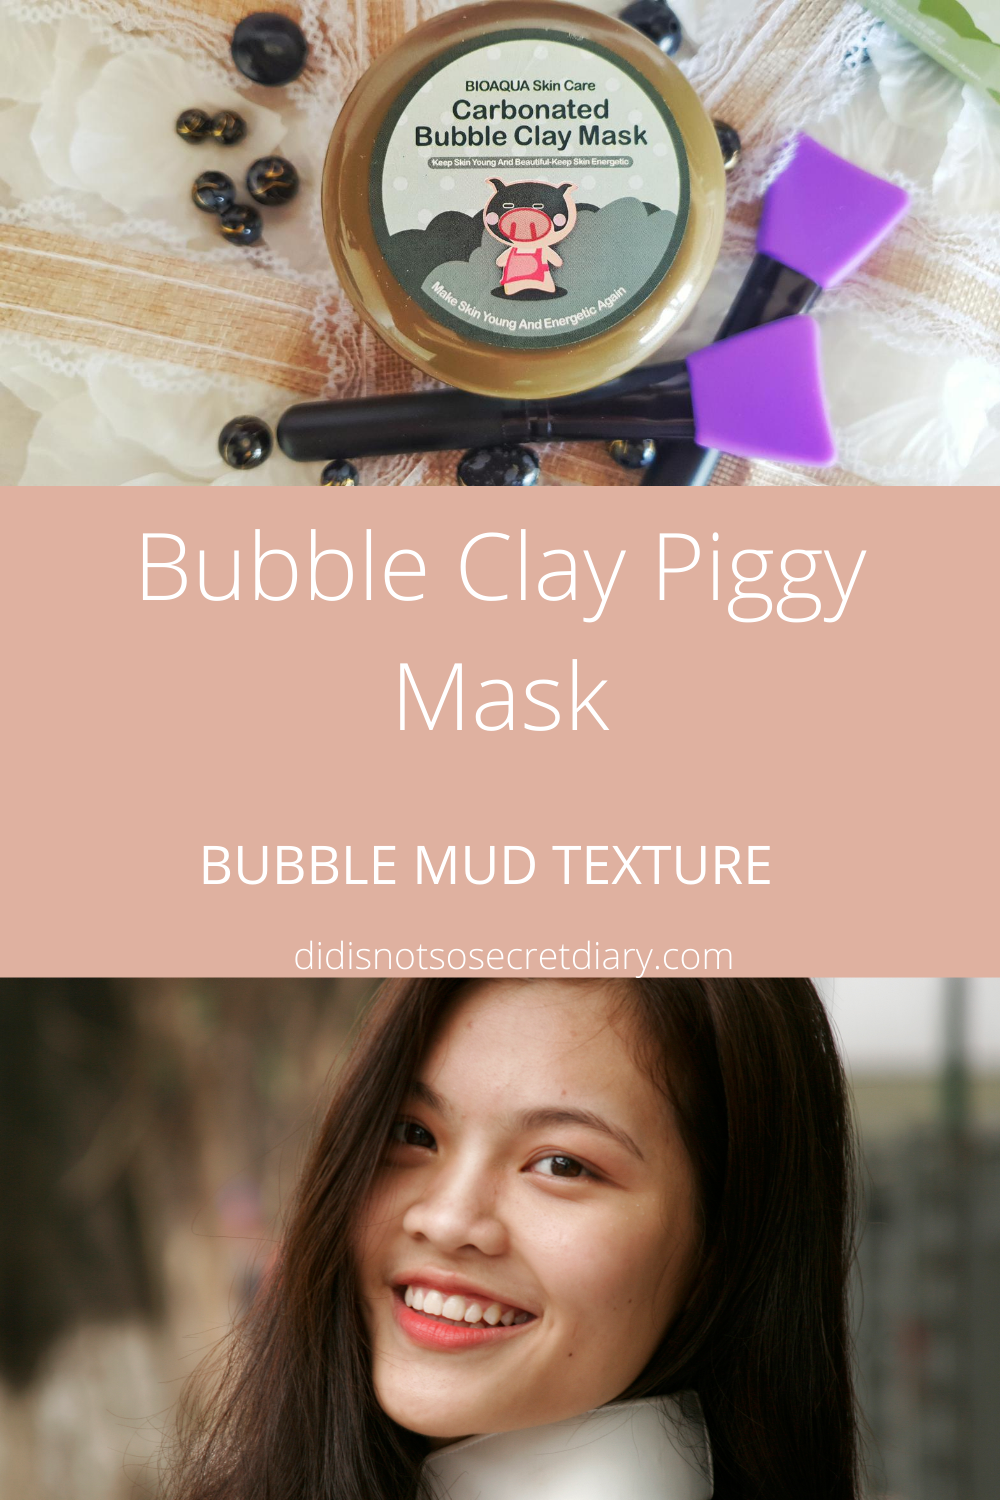 Bubble Mud Texture Clay Mask Review In 2020 Facial Masks Clear Skin Clay Masks